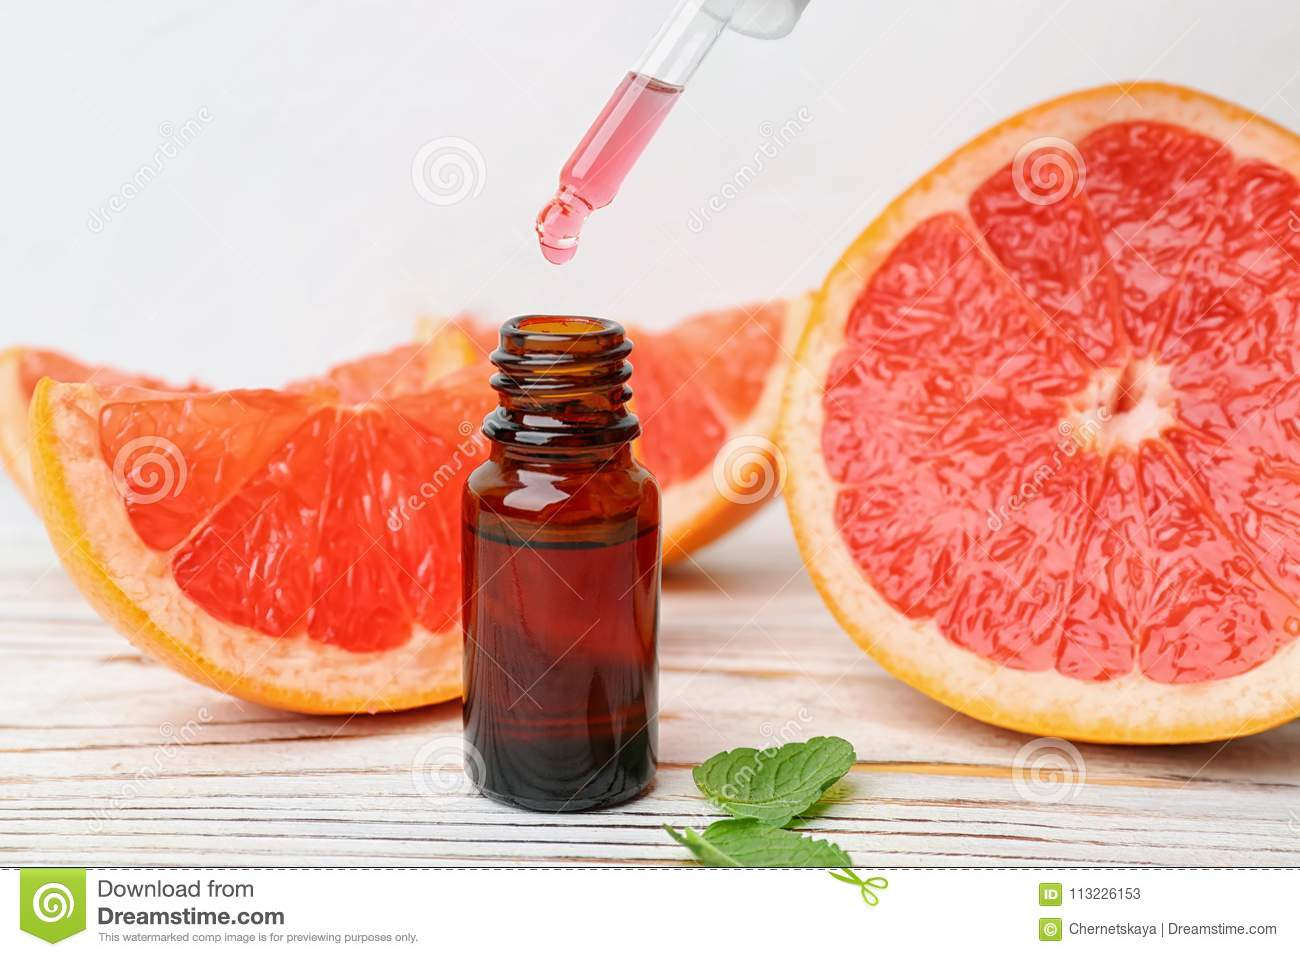 Dripping citrus essential oil into bottle